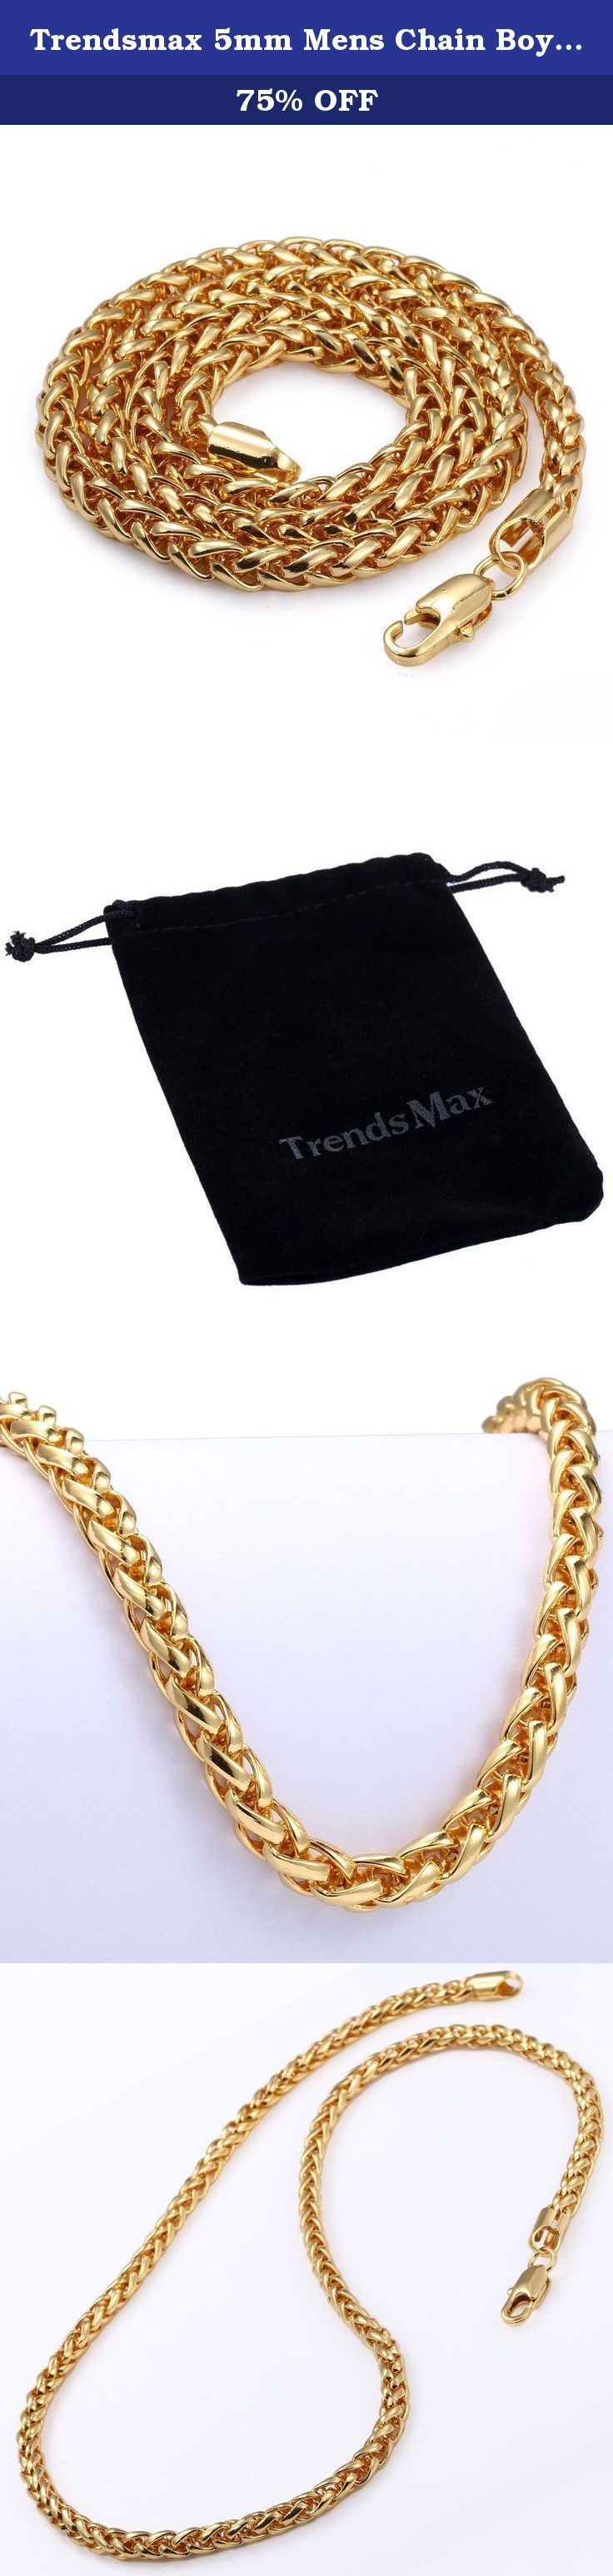 Trendsmax 5mm Mens Chain Boys Wheat Link Yellow Gold Plated Necklace,18-36inch. Fashion Design Trendsmax Jewelry 5mm Mens Chain Boys Wheat Link Yellow Gold Plated Necklace. Available in 18-36 inch. Daily wear, It¡¯s perfect gift for Birthday, Anniversary, Christmas.